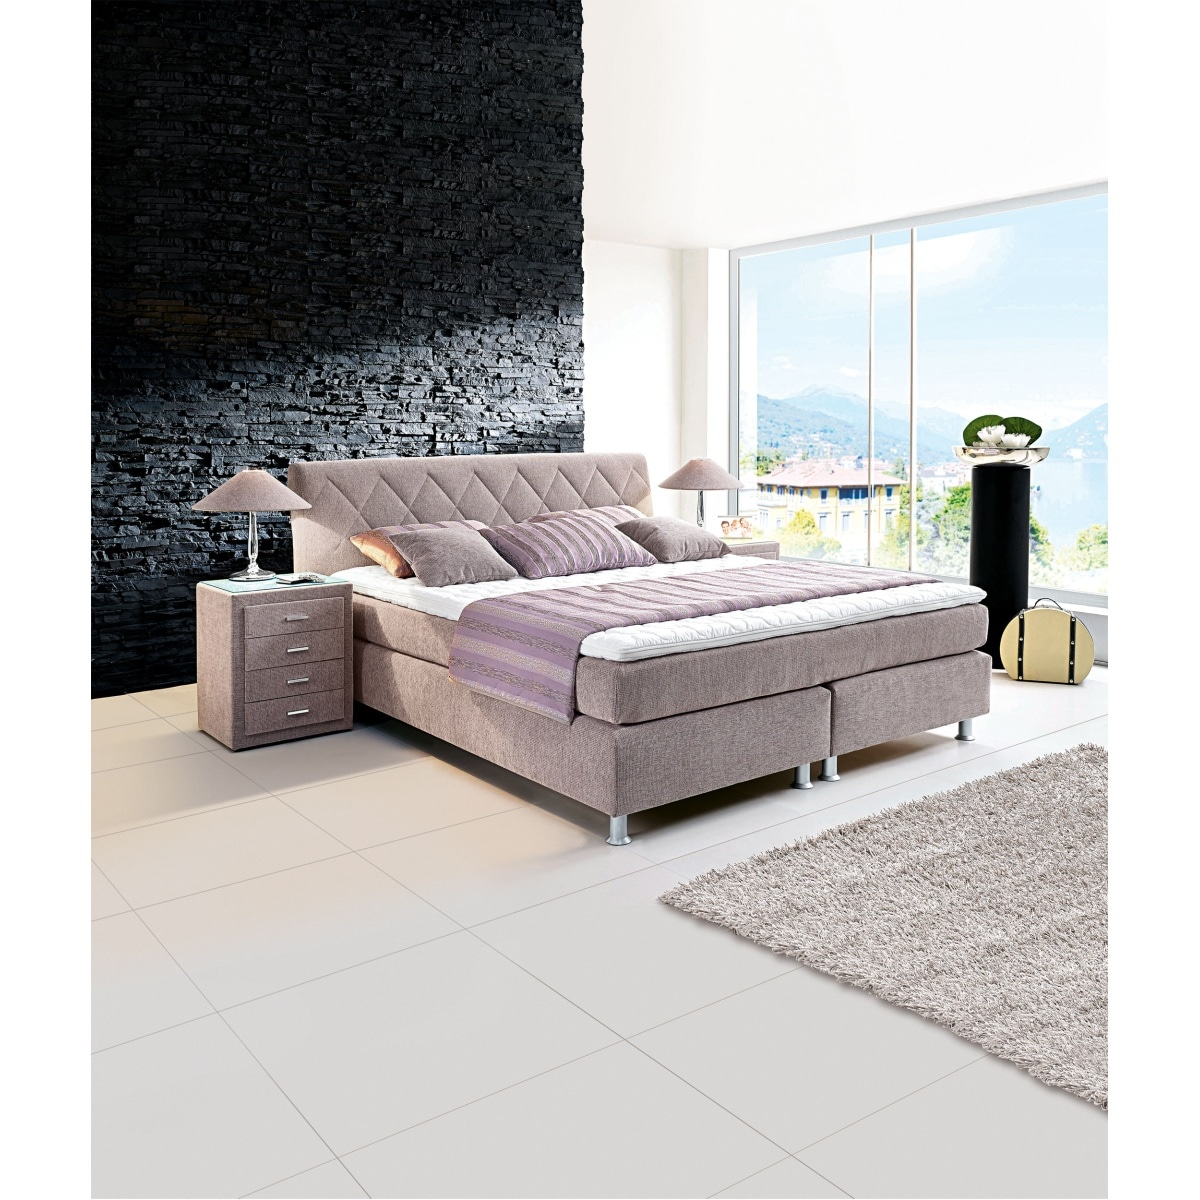 bank vor dem bett holzbank vor dem bett schlafzimmer. Black Bedroom Furniture Sets. Home Design Ideas